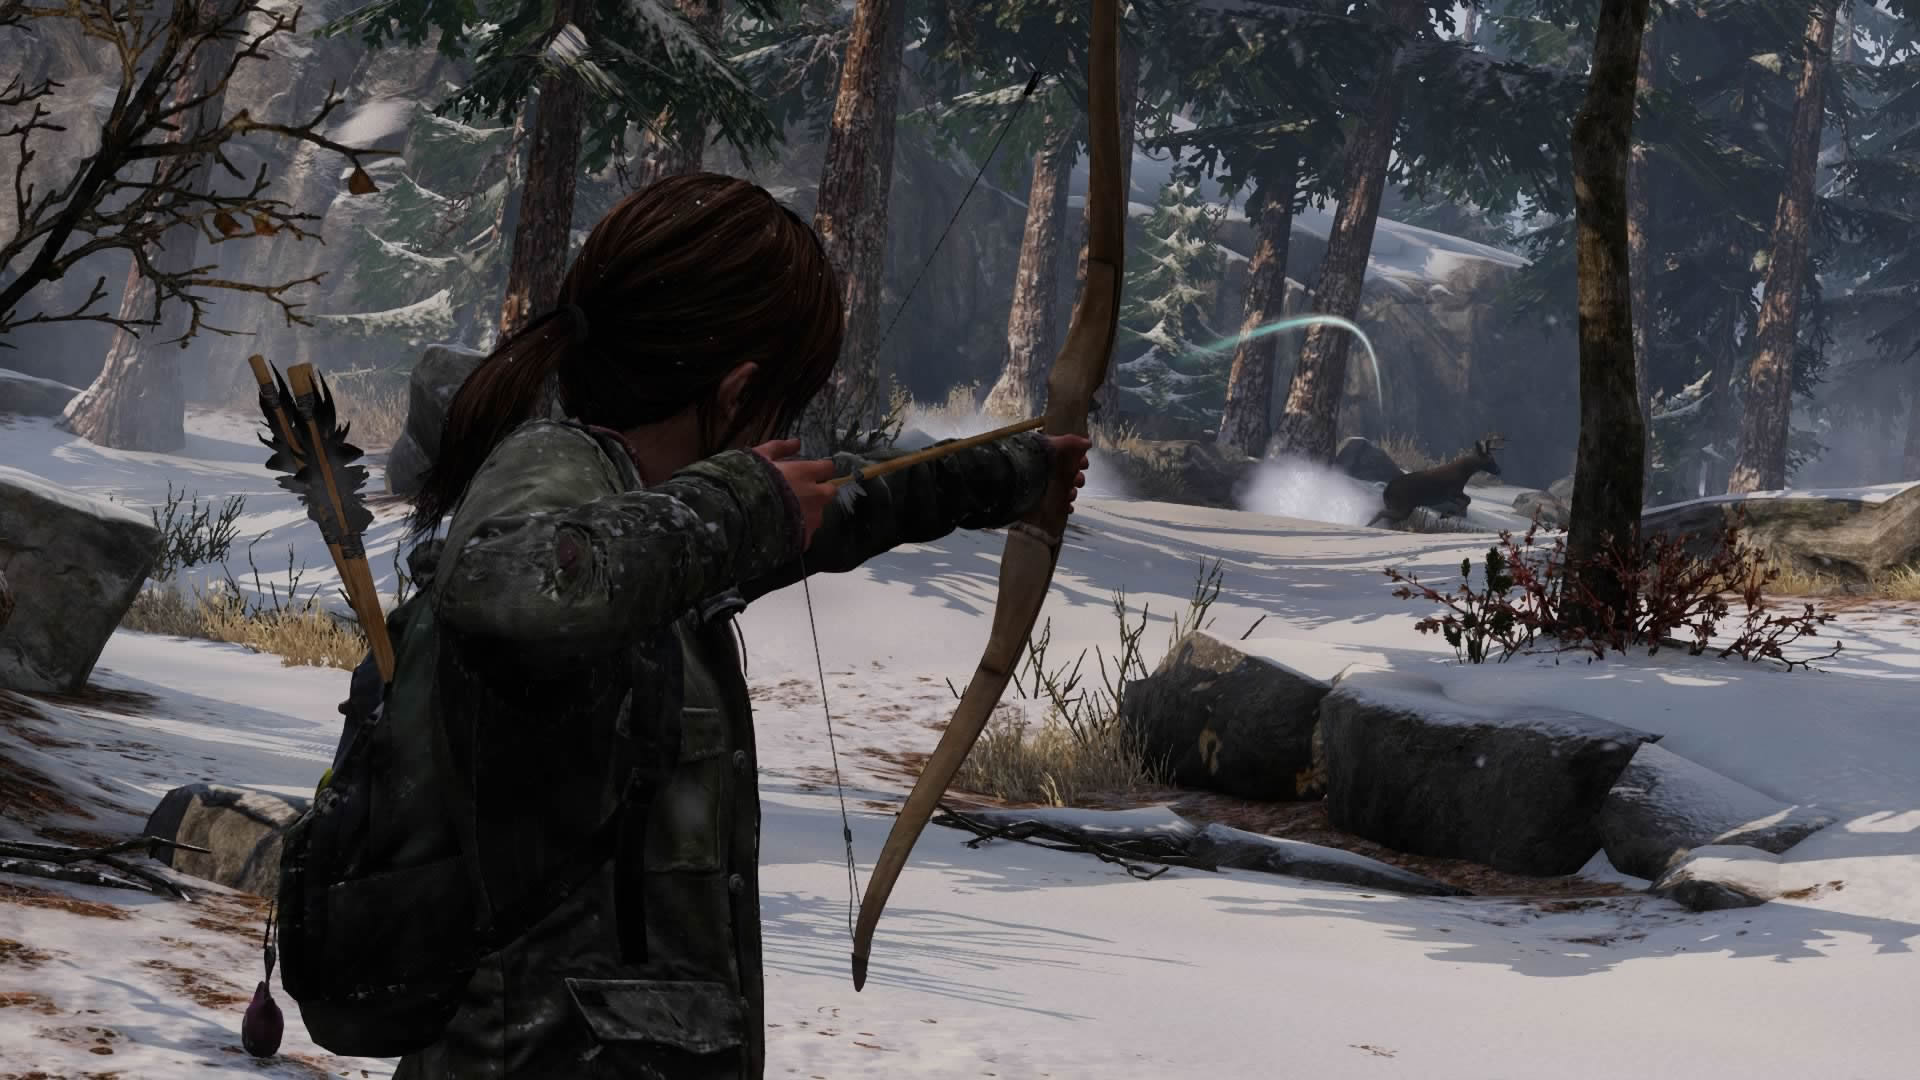 The Last of Us Gets Free Multiplayer Maps on PS3 and PS4 to Make Up